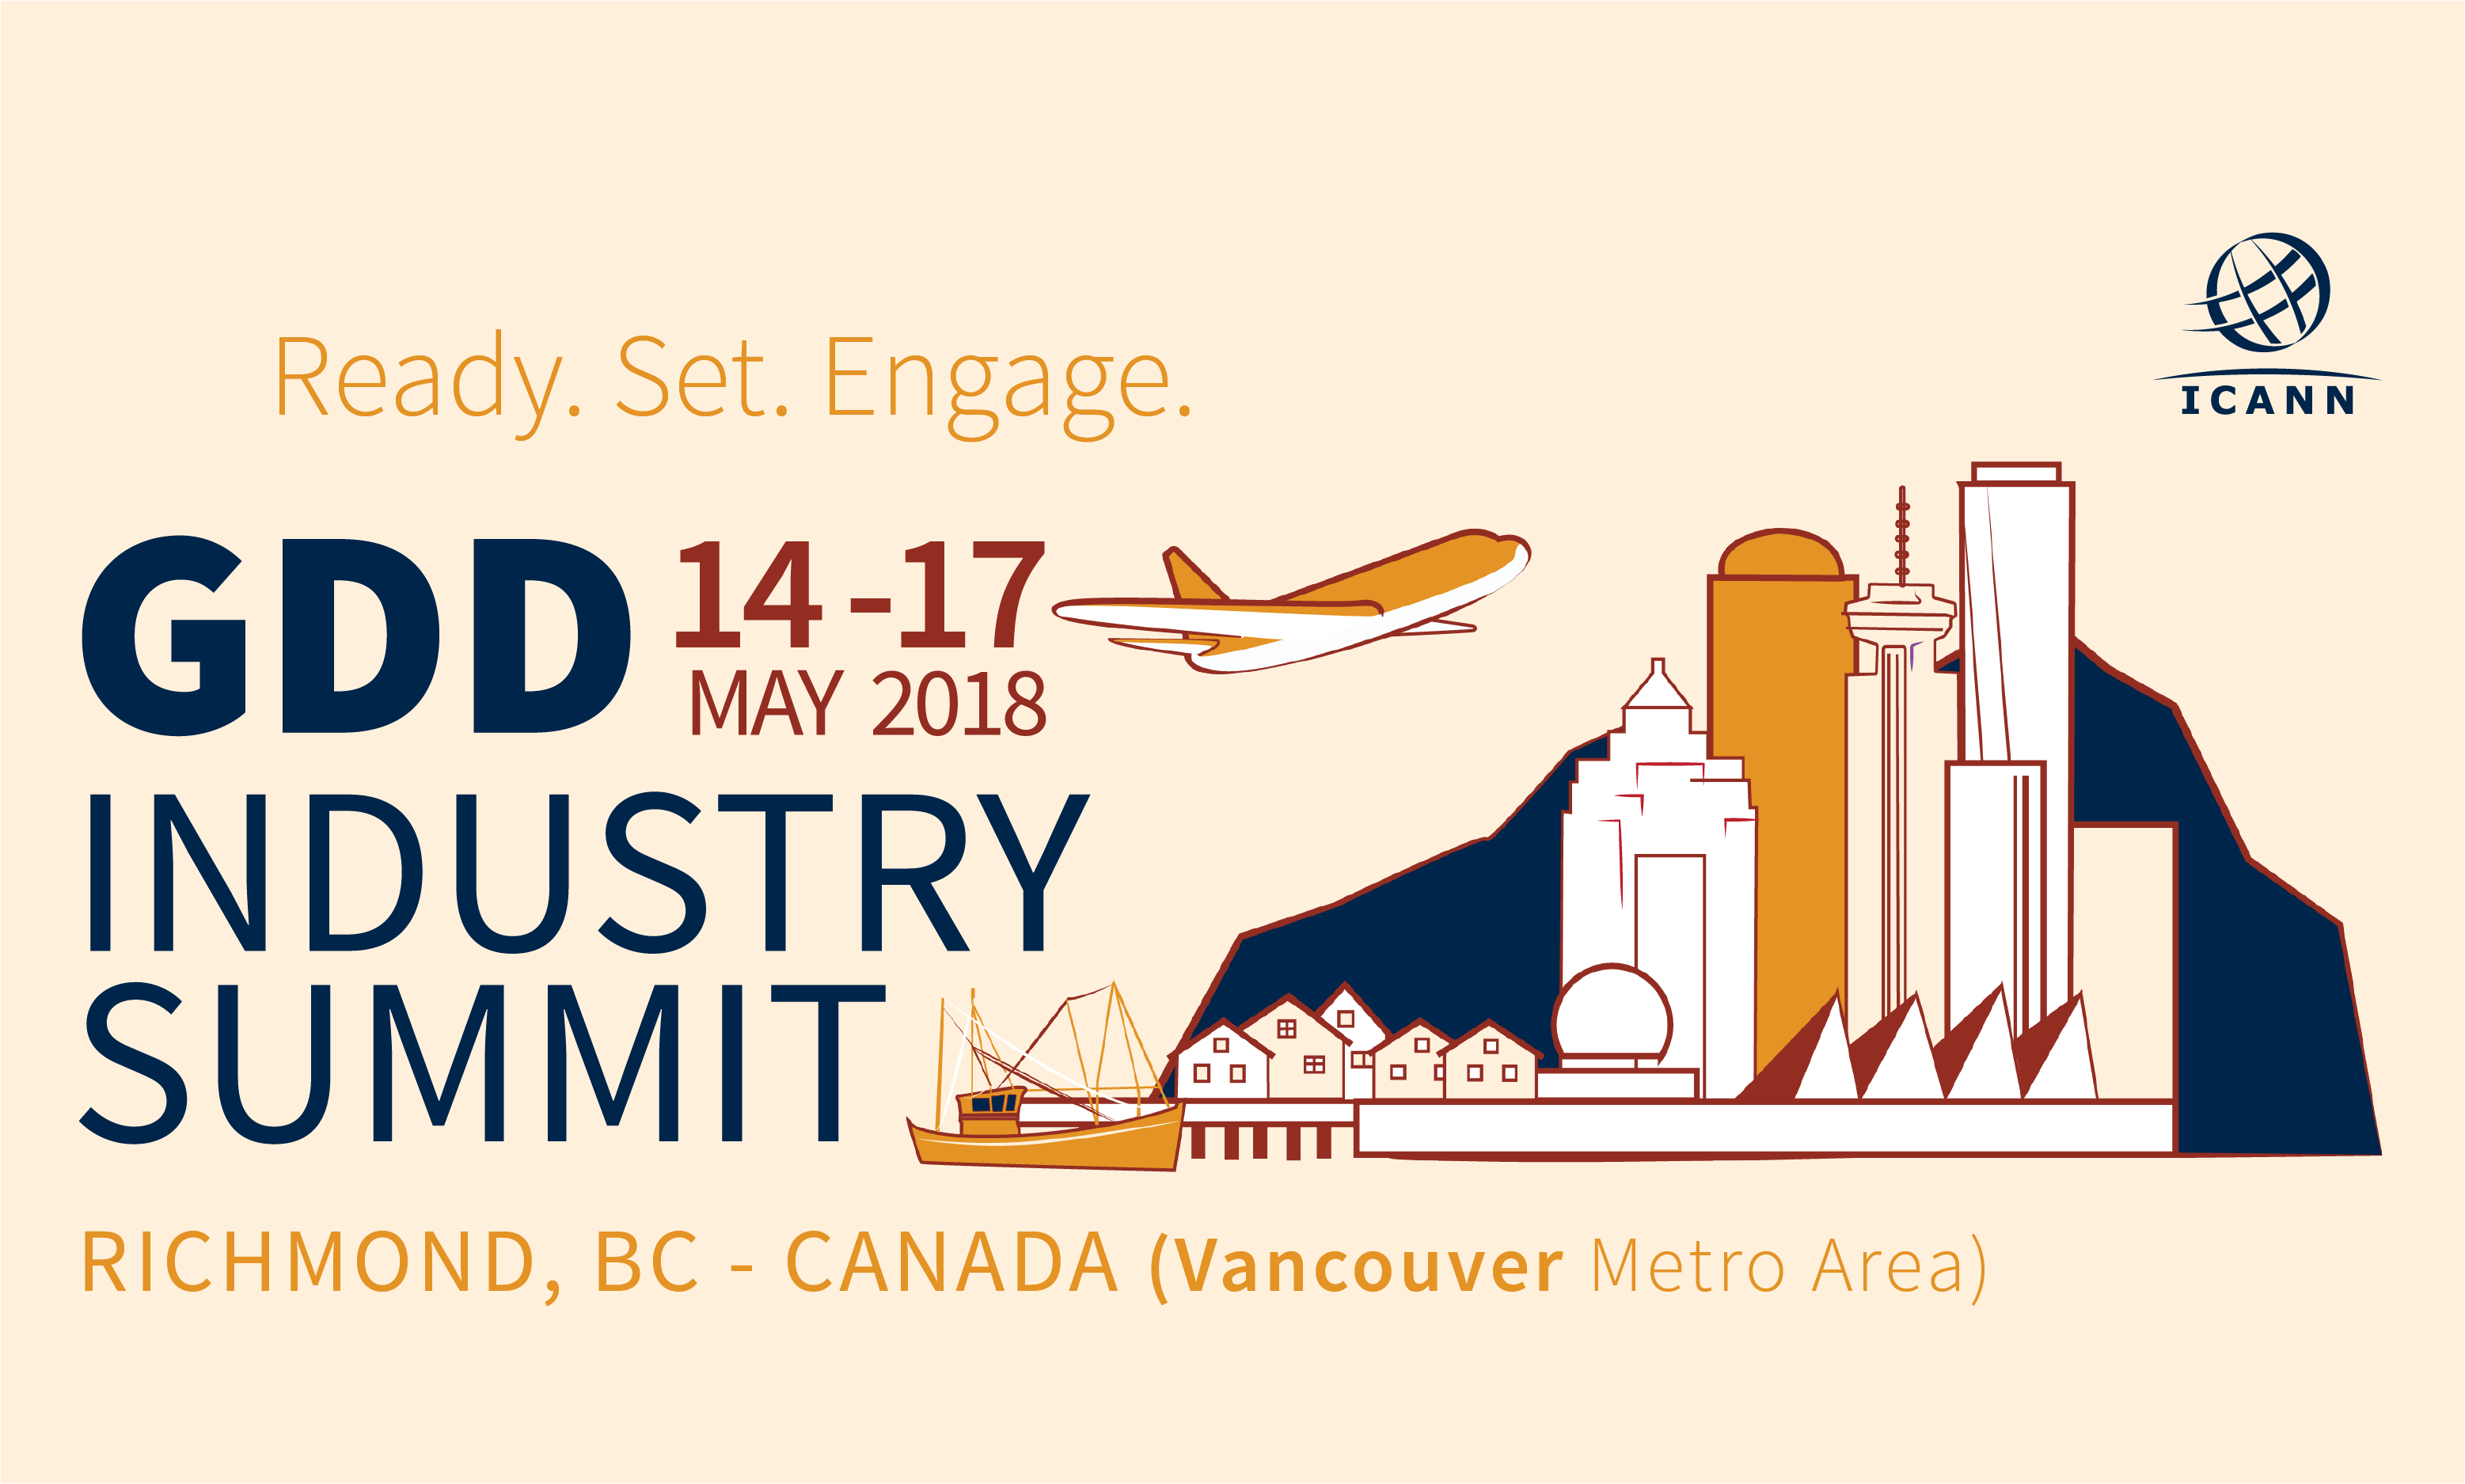 GDD Industry Summit